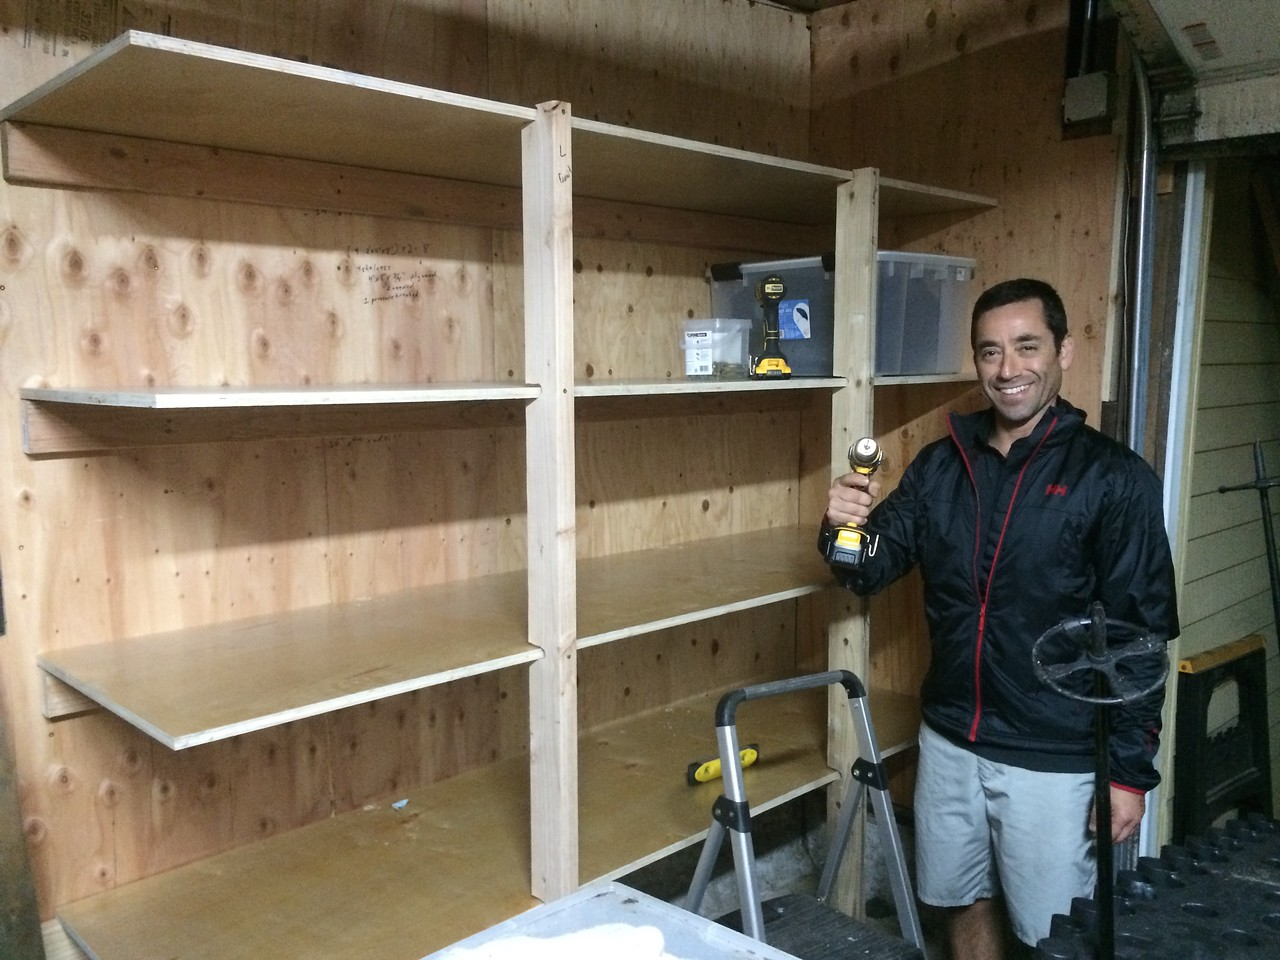 Custom 7' shelving installed along garage wall.